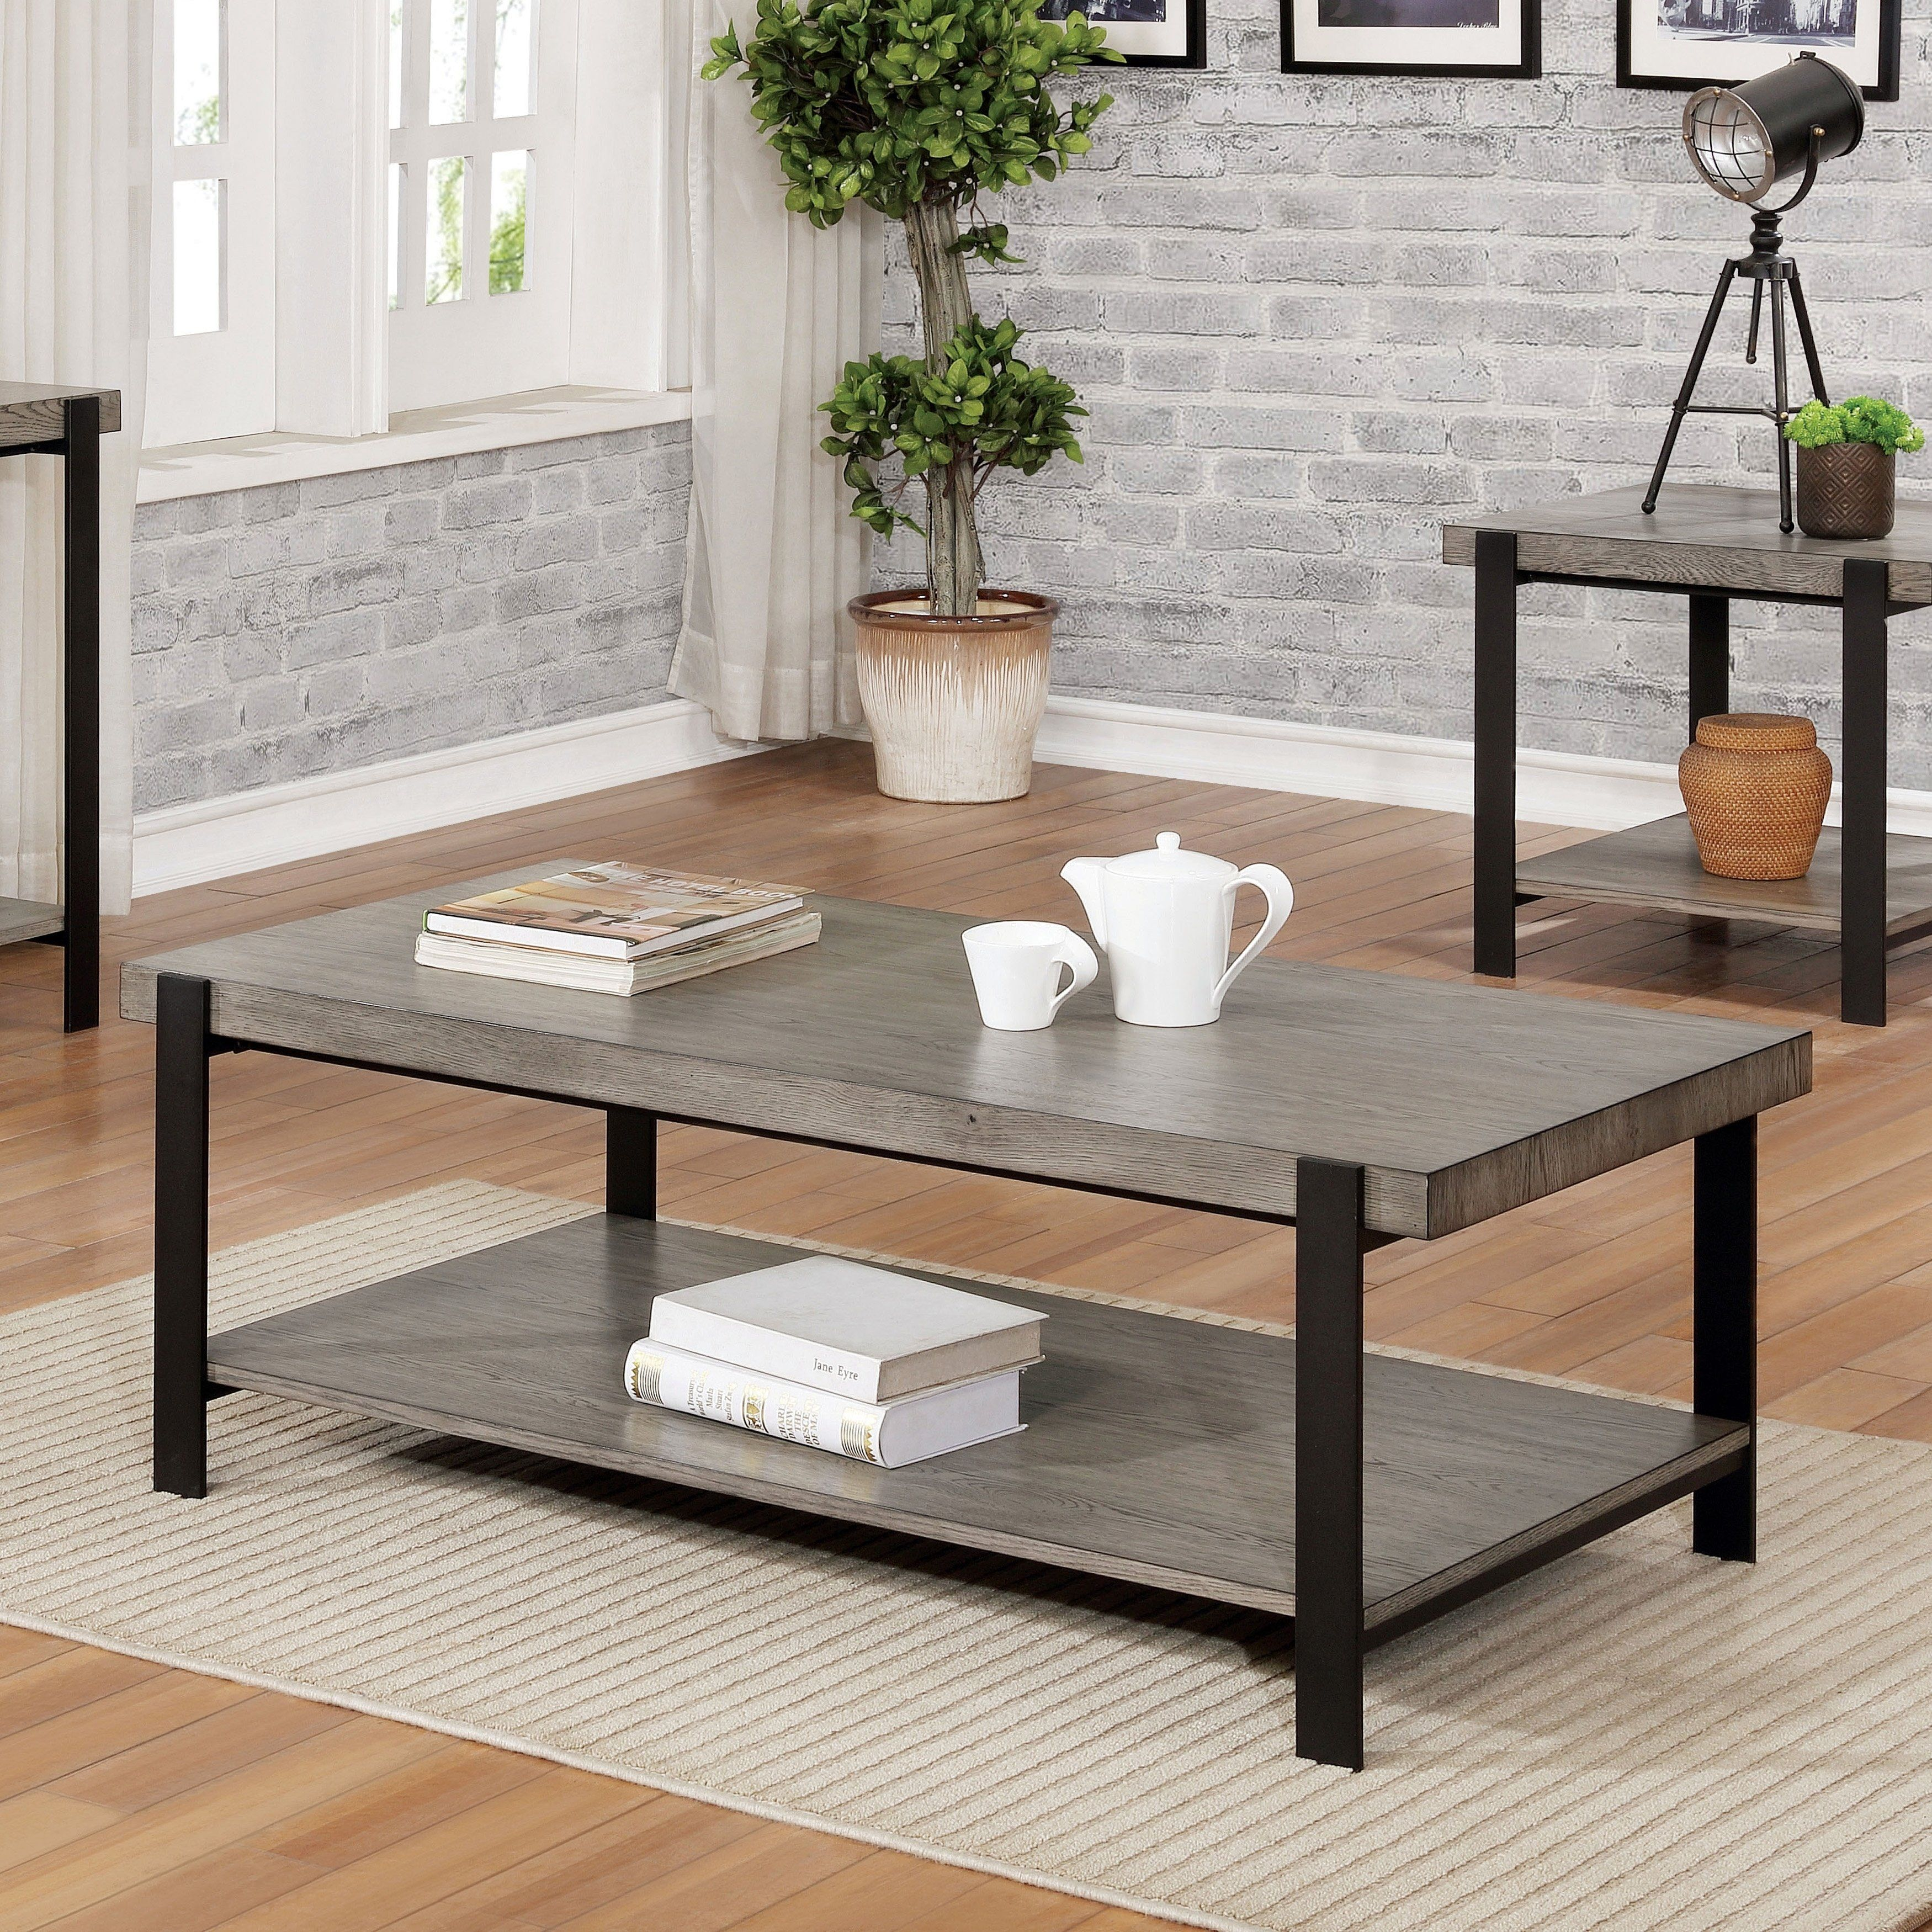 Pin By Jeanette Andino On Ryan S Apartment In 2021 Coffee Table Furniture Of America Coffee Table Grey [ 3500 x 3500 Pixel ]